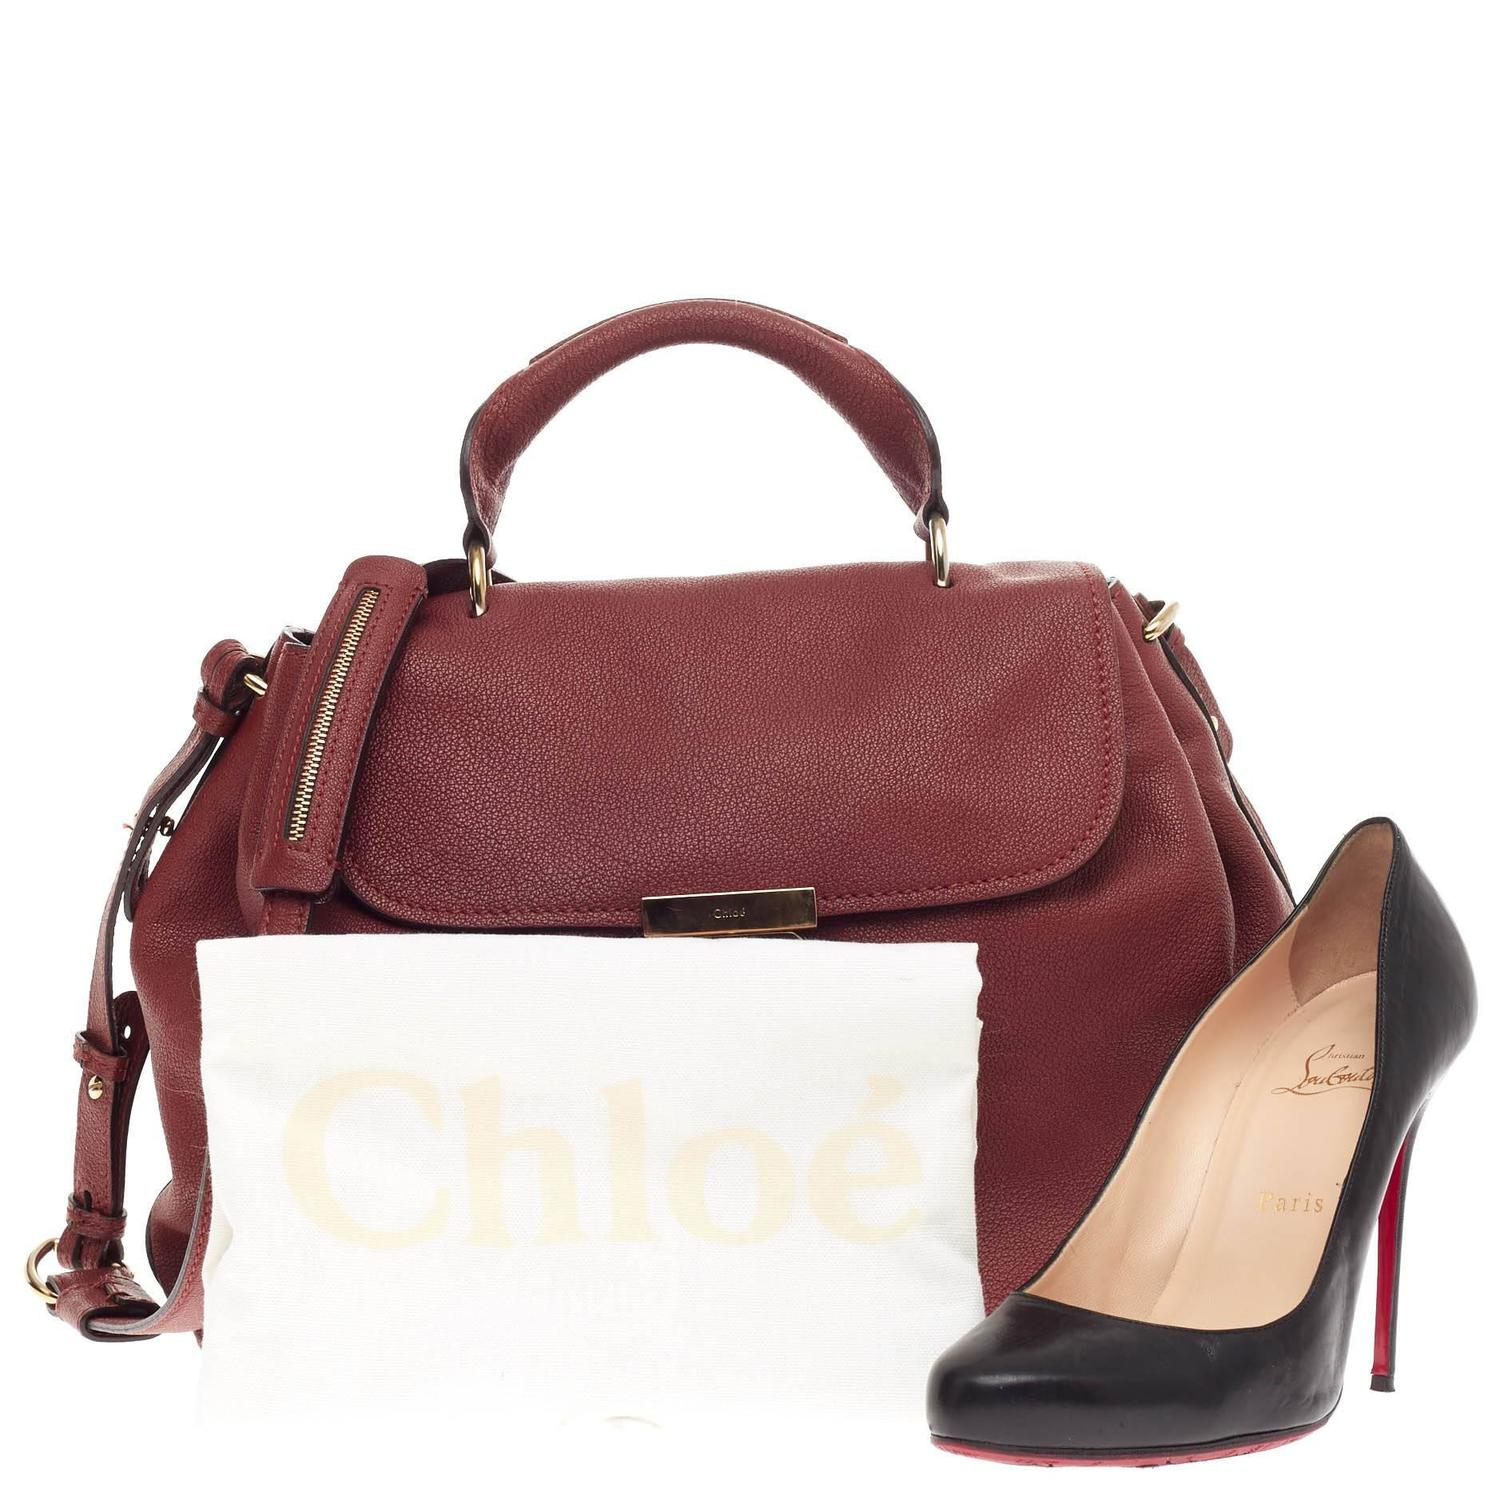 66ccbd6dcbd Chloe Elsie Convertible Satchel Leather Medium at 1stdibs